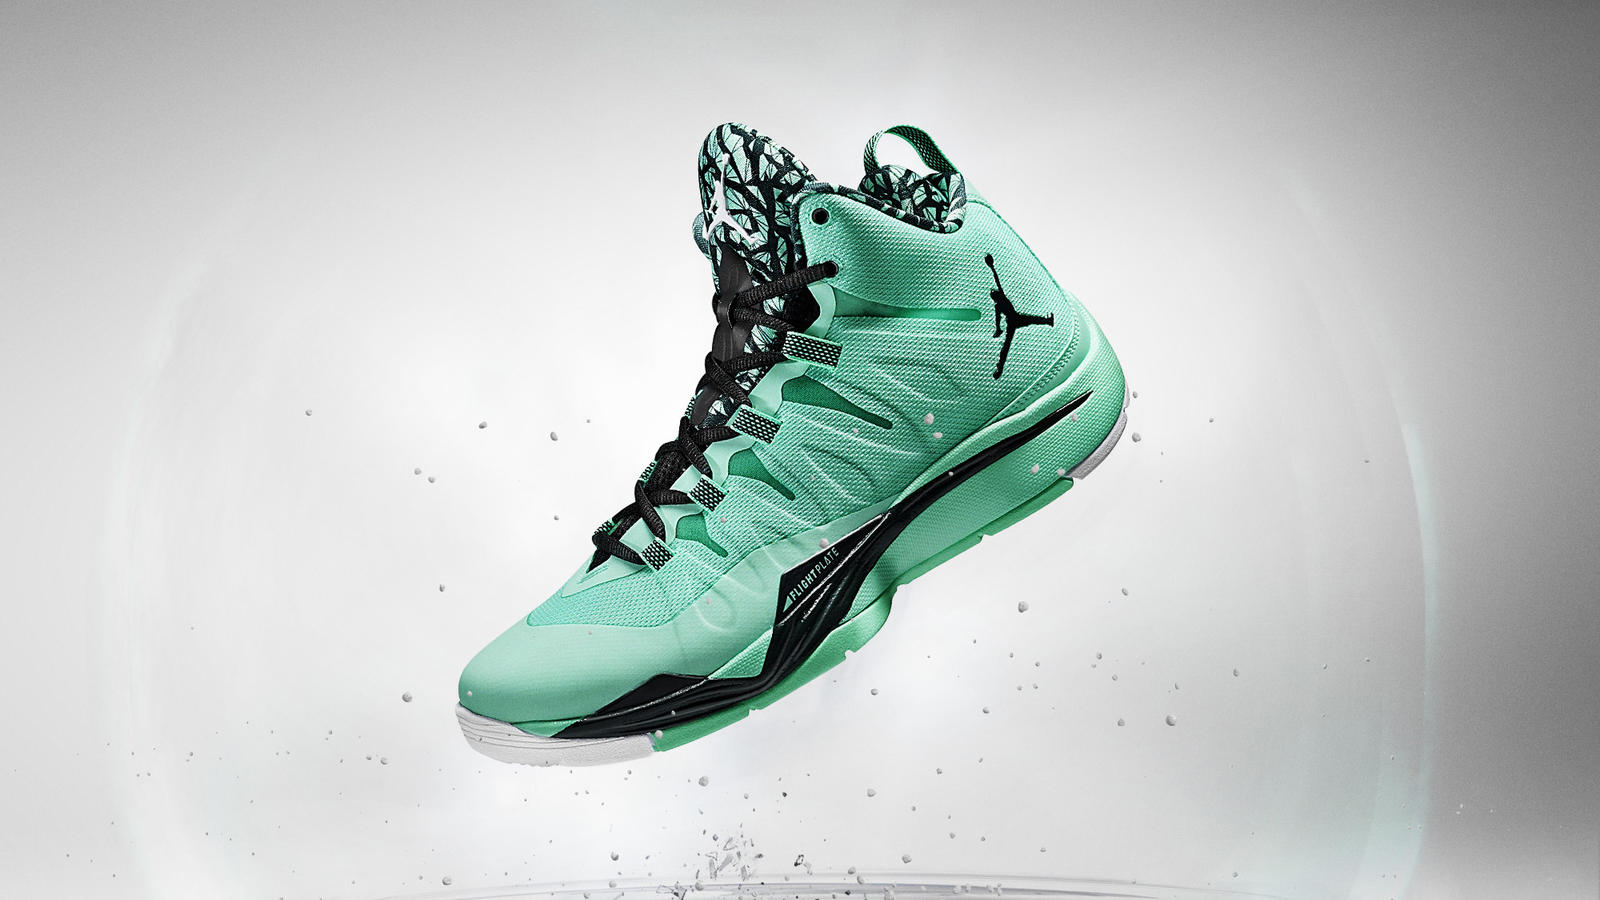 jordan_superfly2_jade_hero_v2